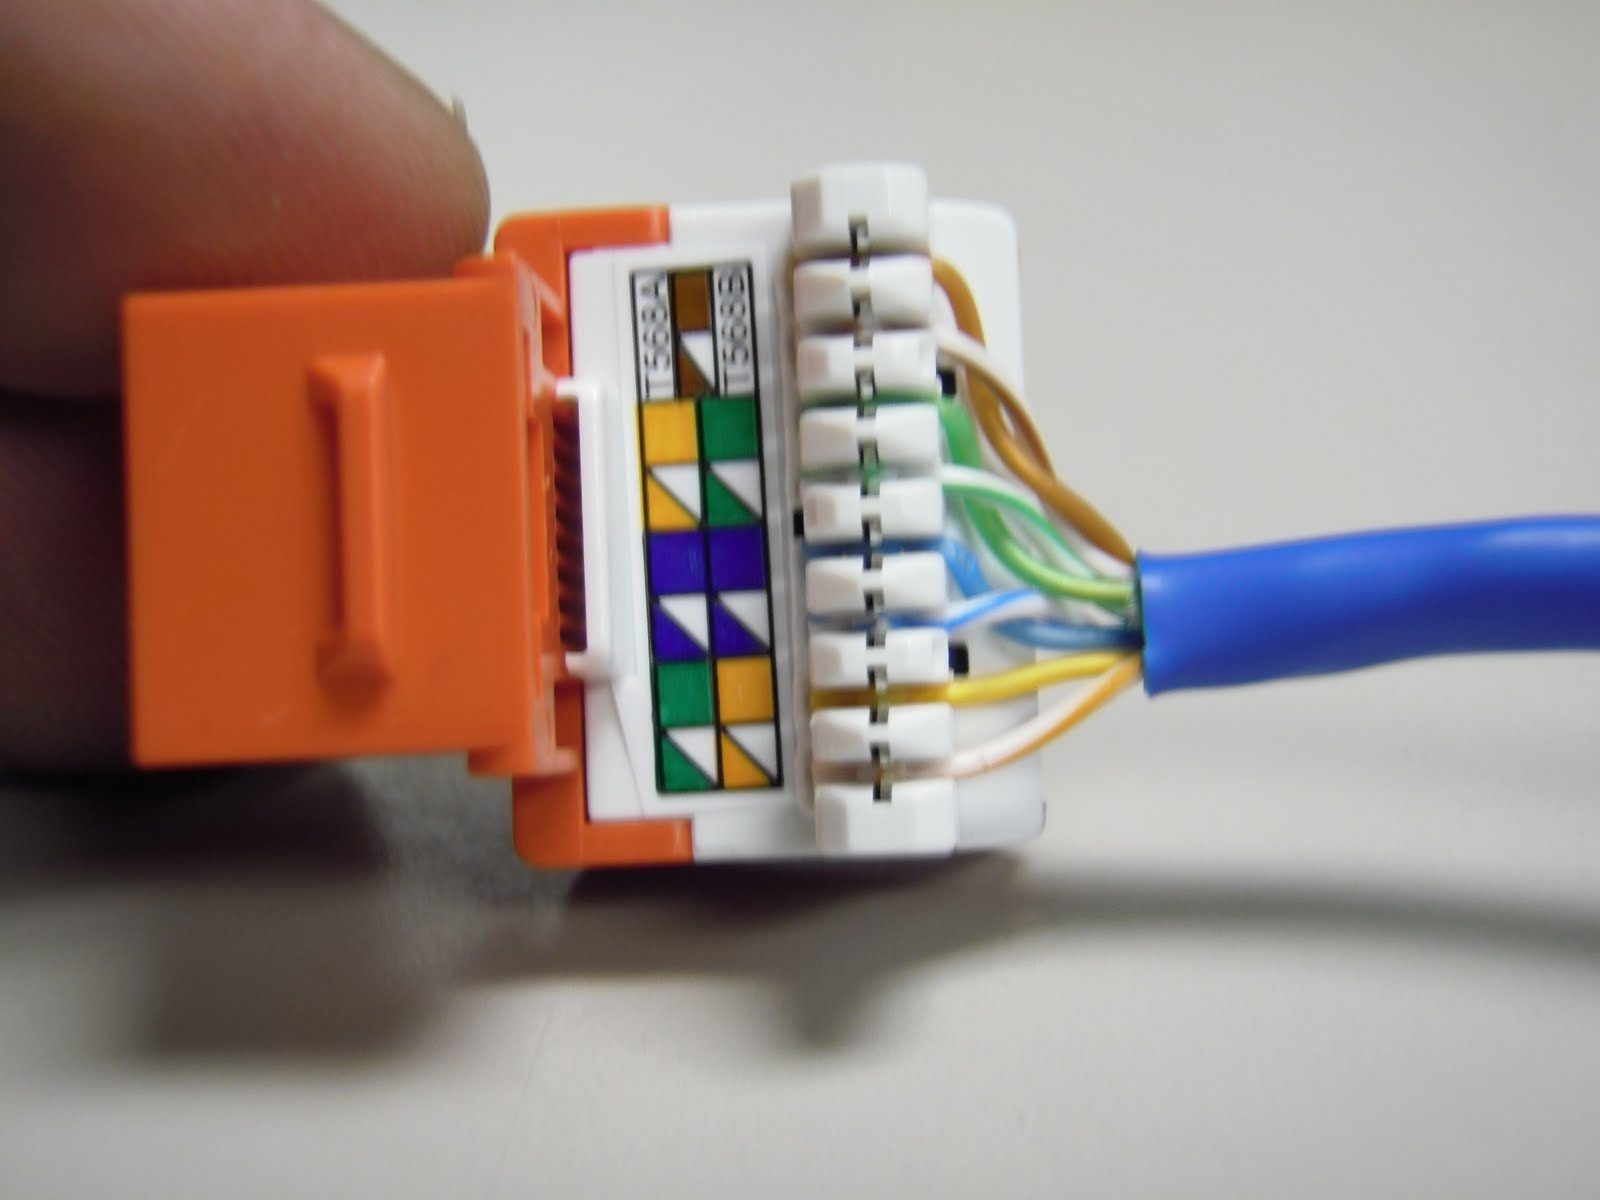 wiring diagram leviton cat 5e jacks fiber optic patch panel wiring the trench how to punch [ 1600 x 1200 Pixel ]